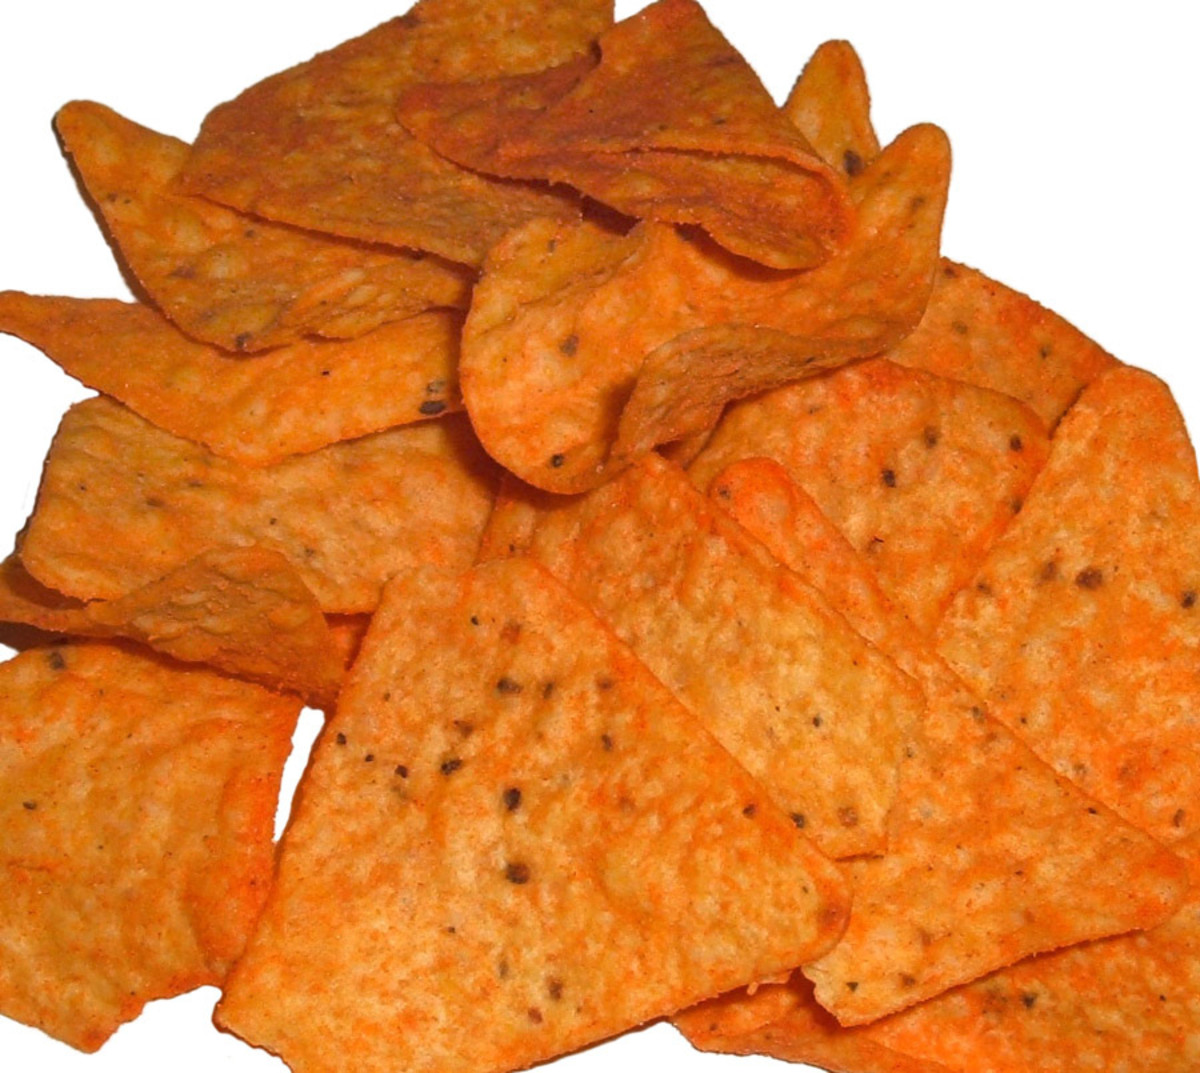 In 1966, Doritos appeared on American grocery store shelves for the first time.